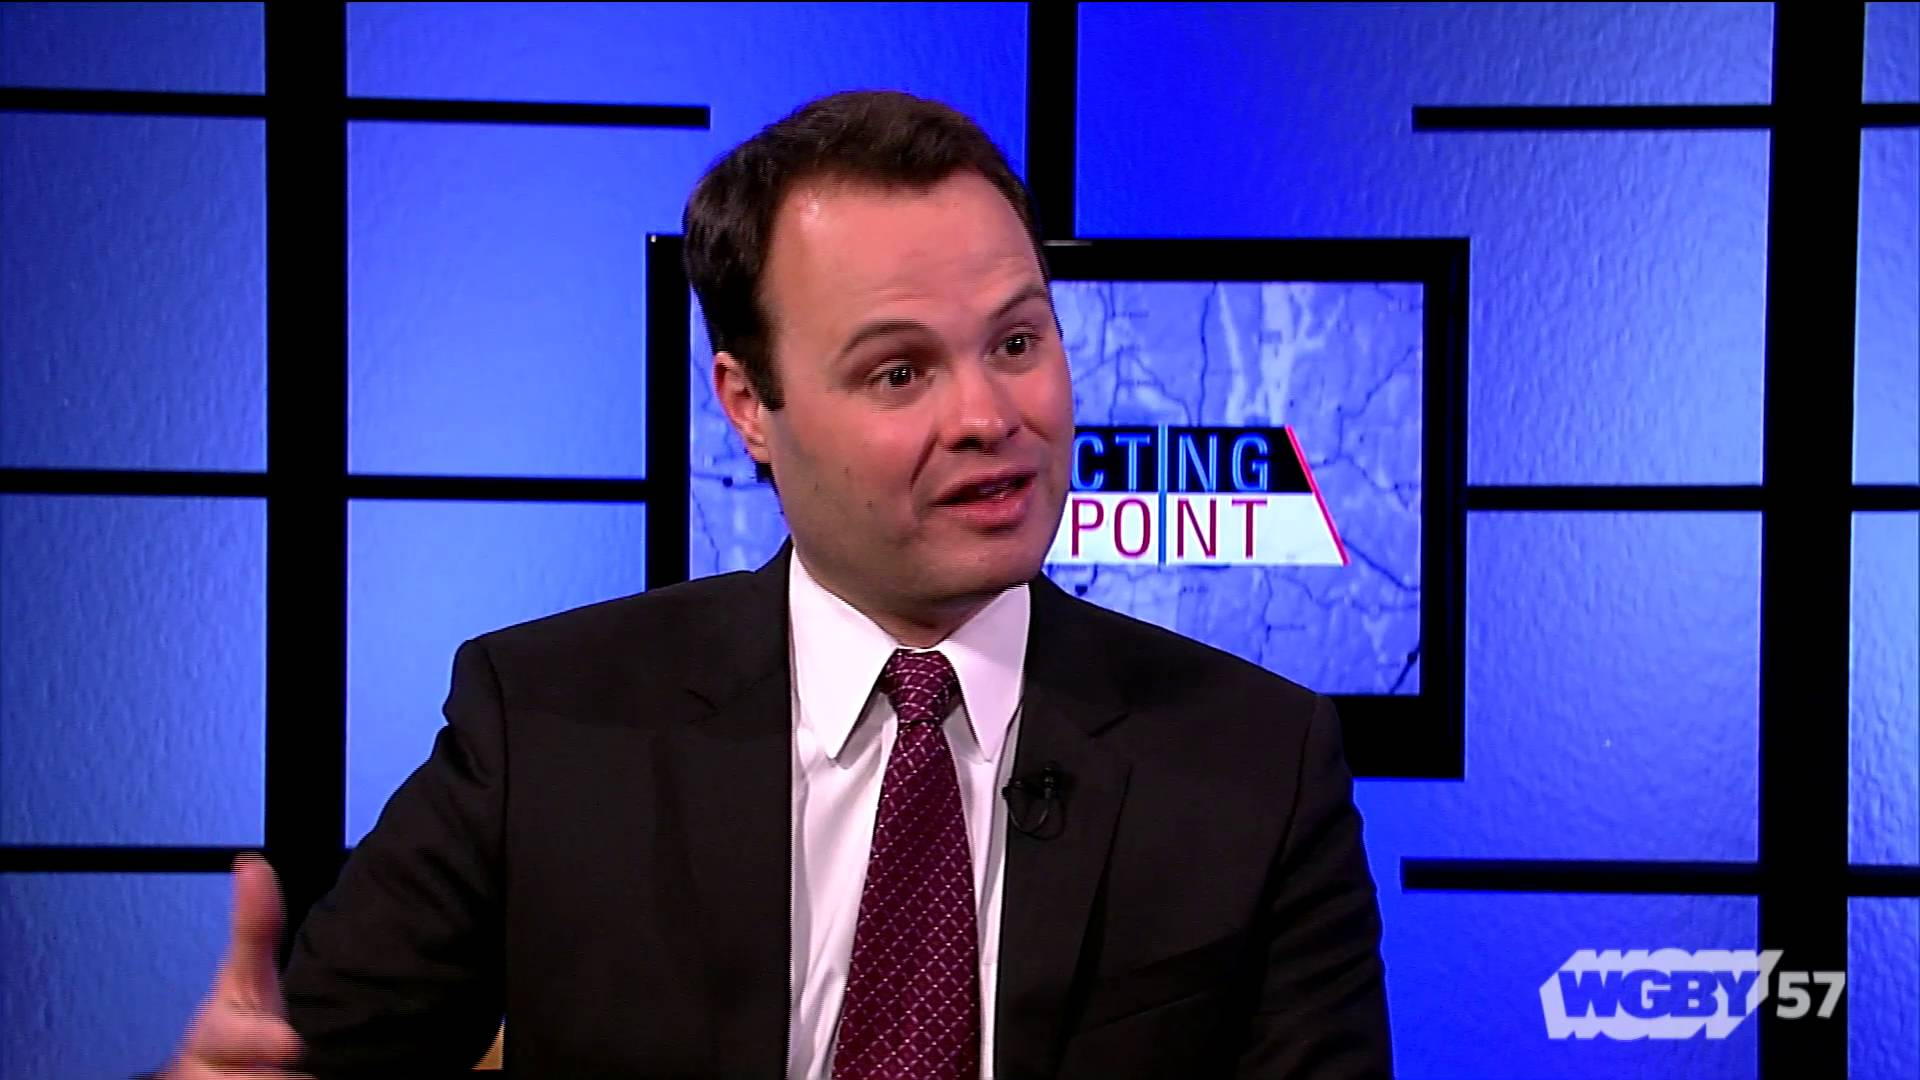 Sen. Eric Lesser discusses the skills gap crisis in Massachusetts and what the state is doing to address the problem on the executive and legislative level.